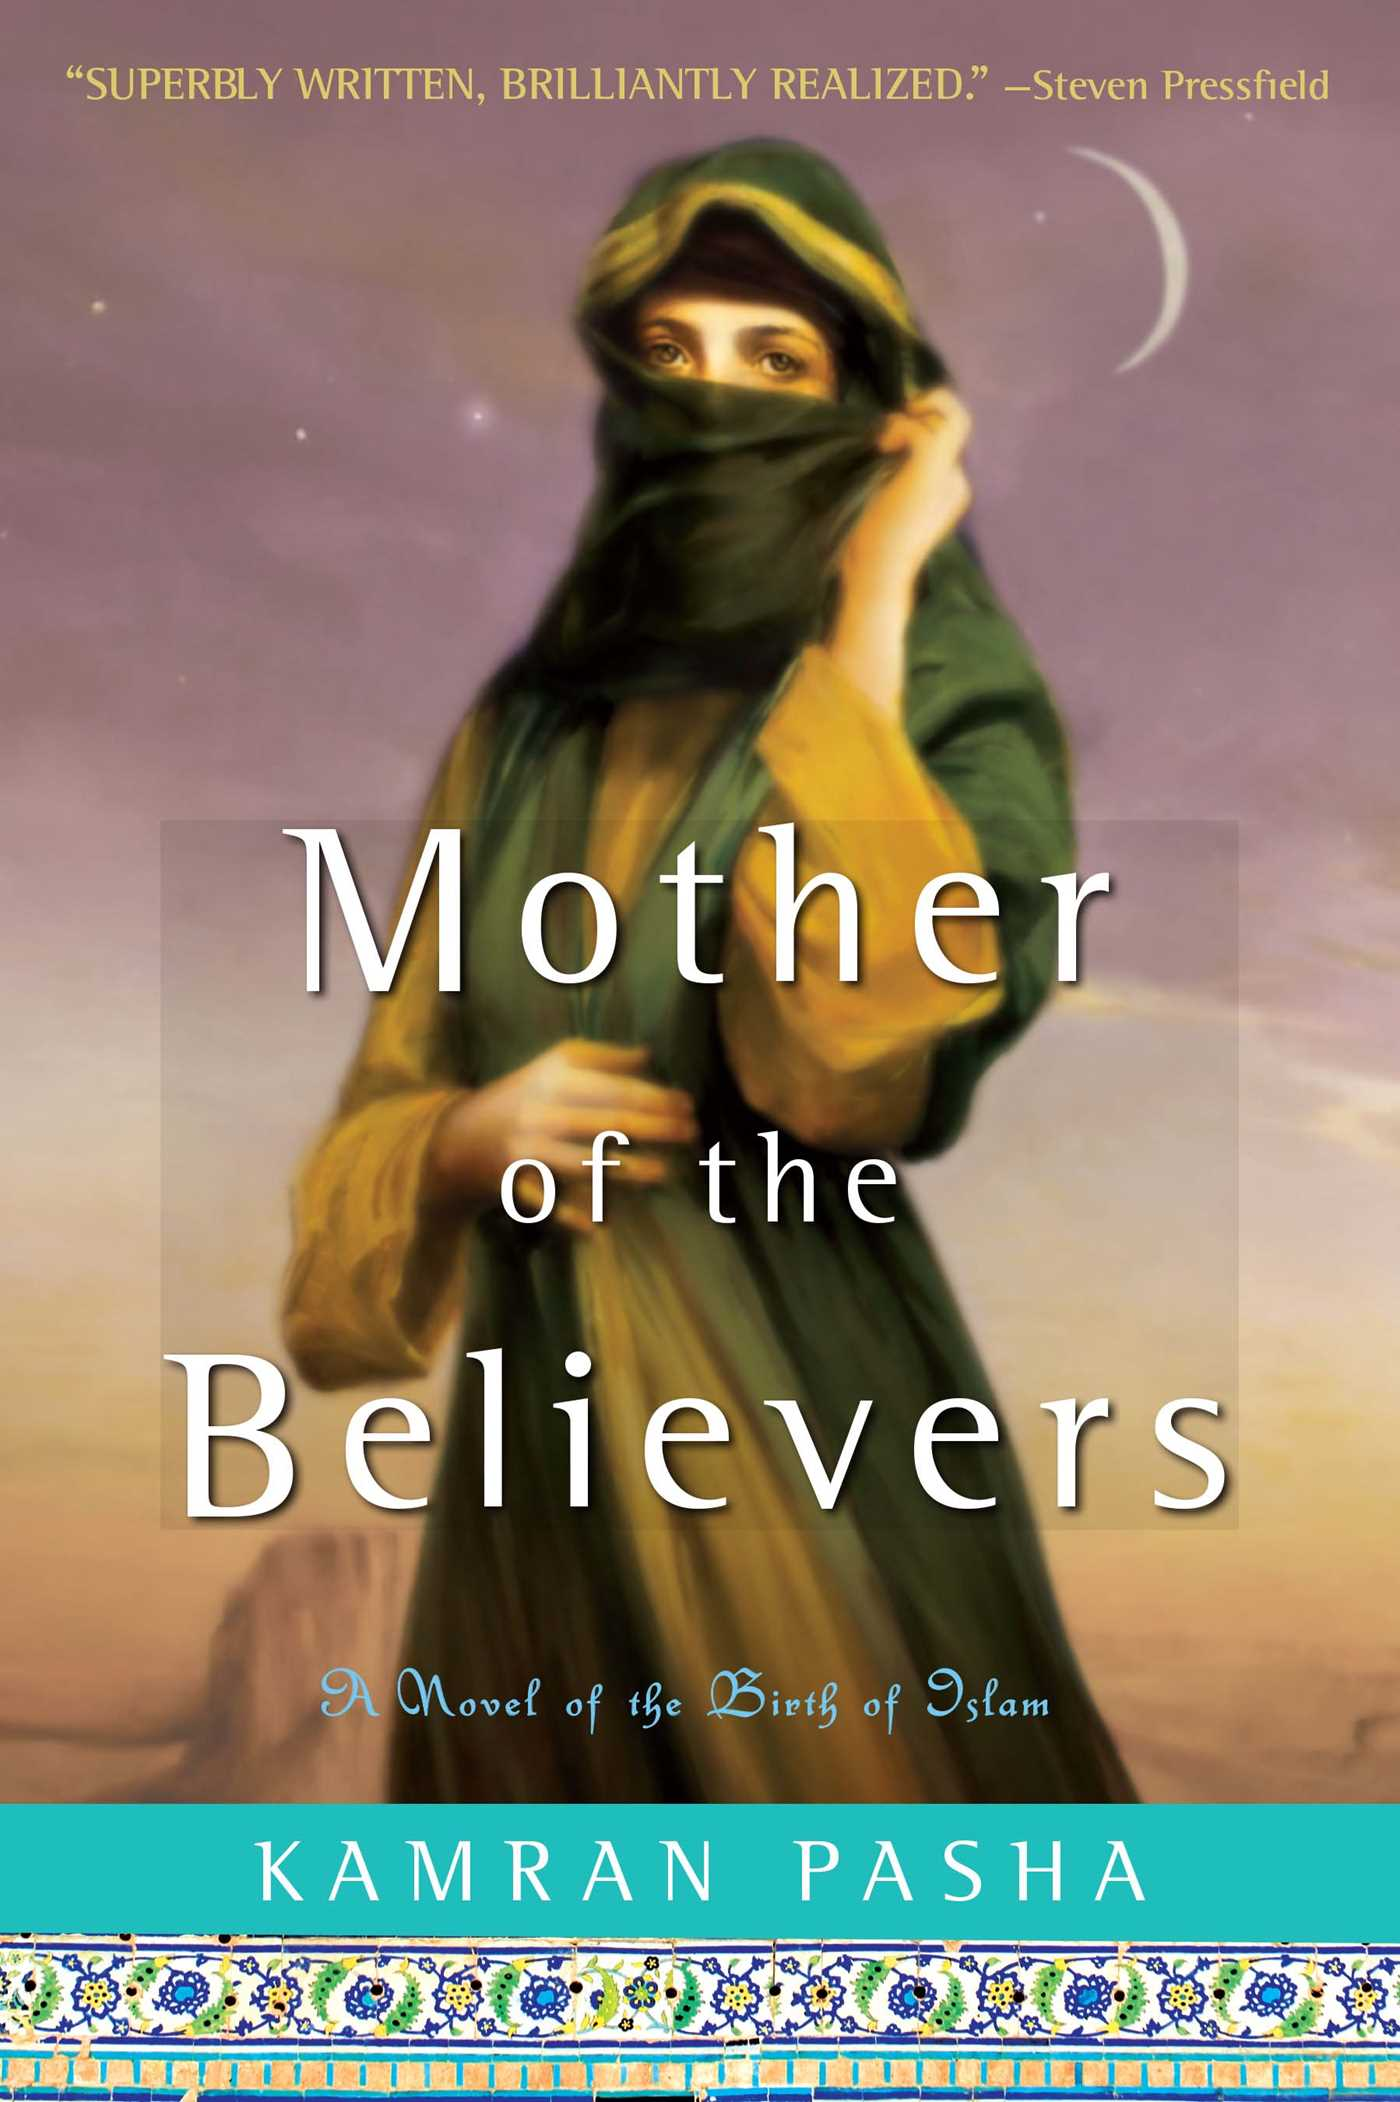 Book Cover Image (jpg): Mother of the Believers